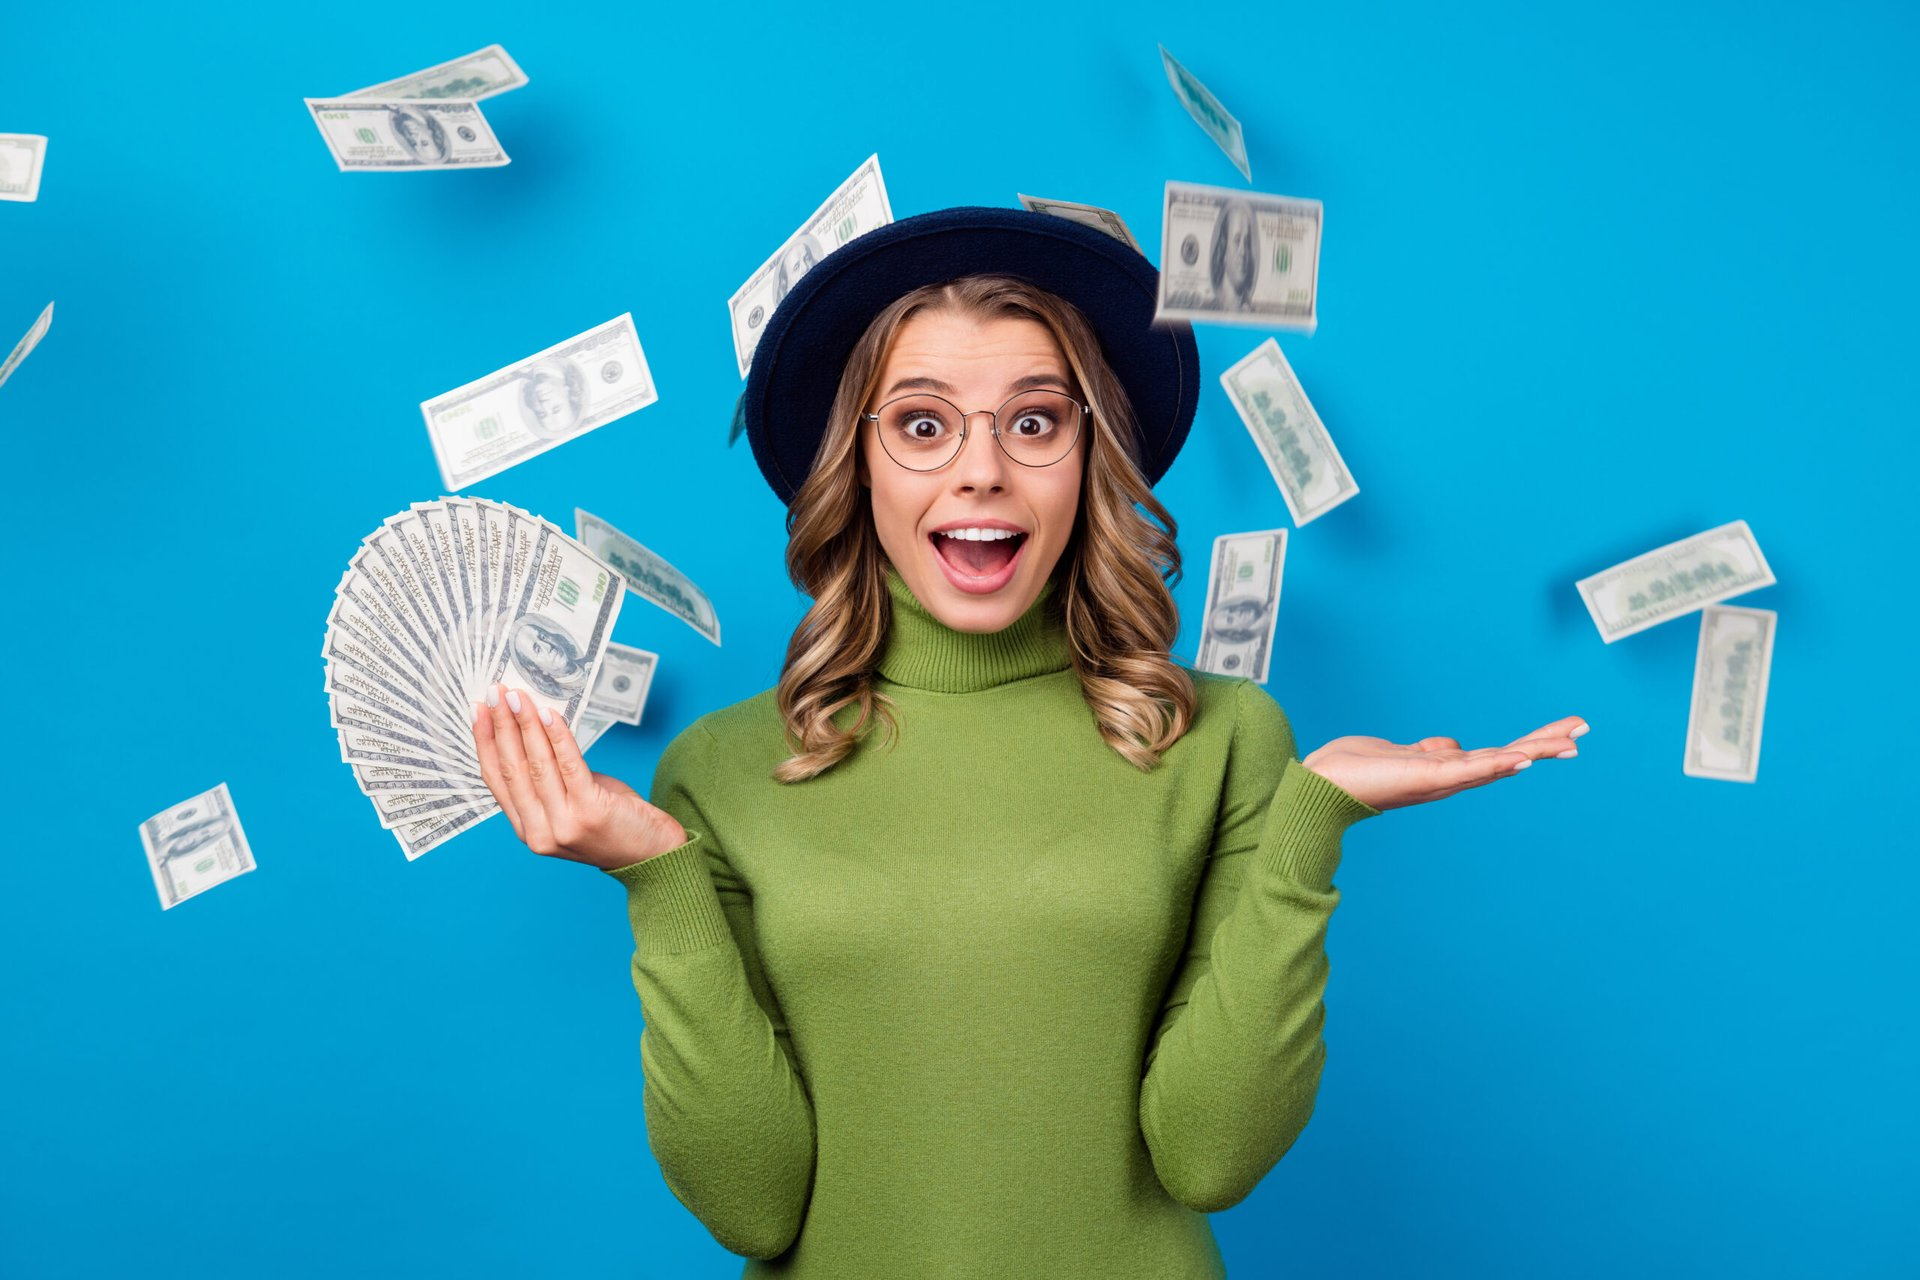 Excited woman holding lots of money and money raining from above